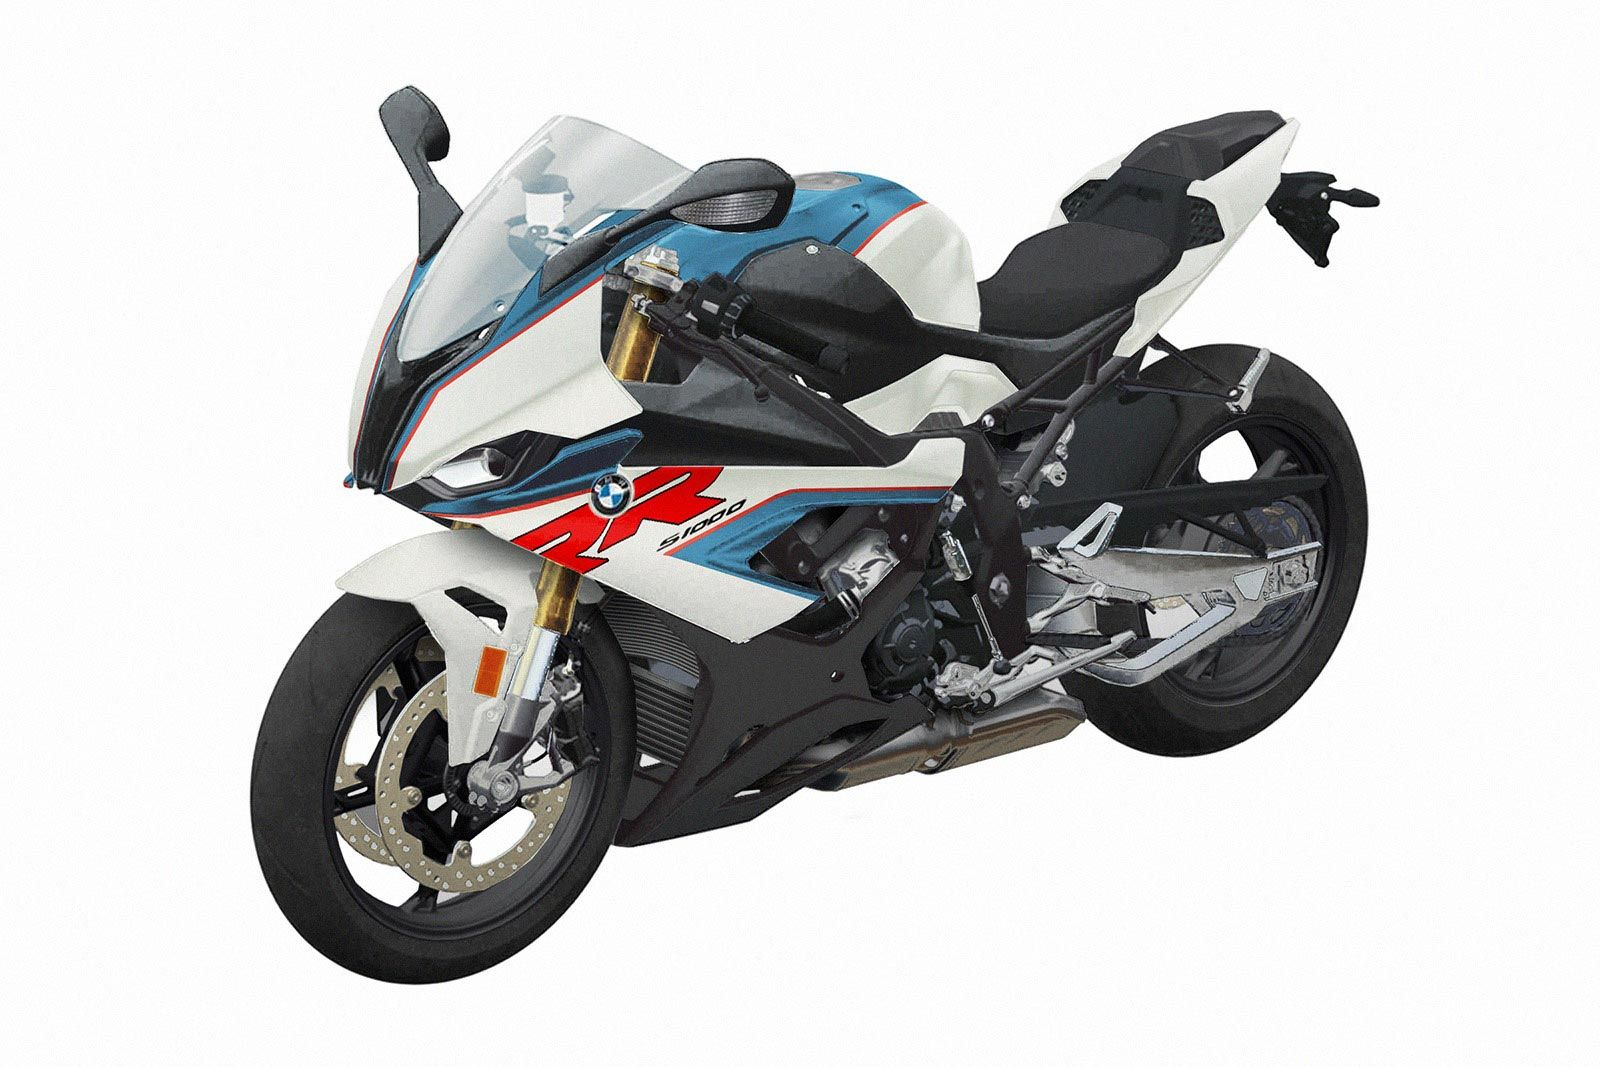 New S1000rr 2019 Dream Bmw S1000rr Motorcycle Bike